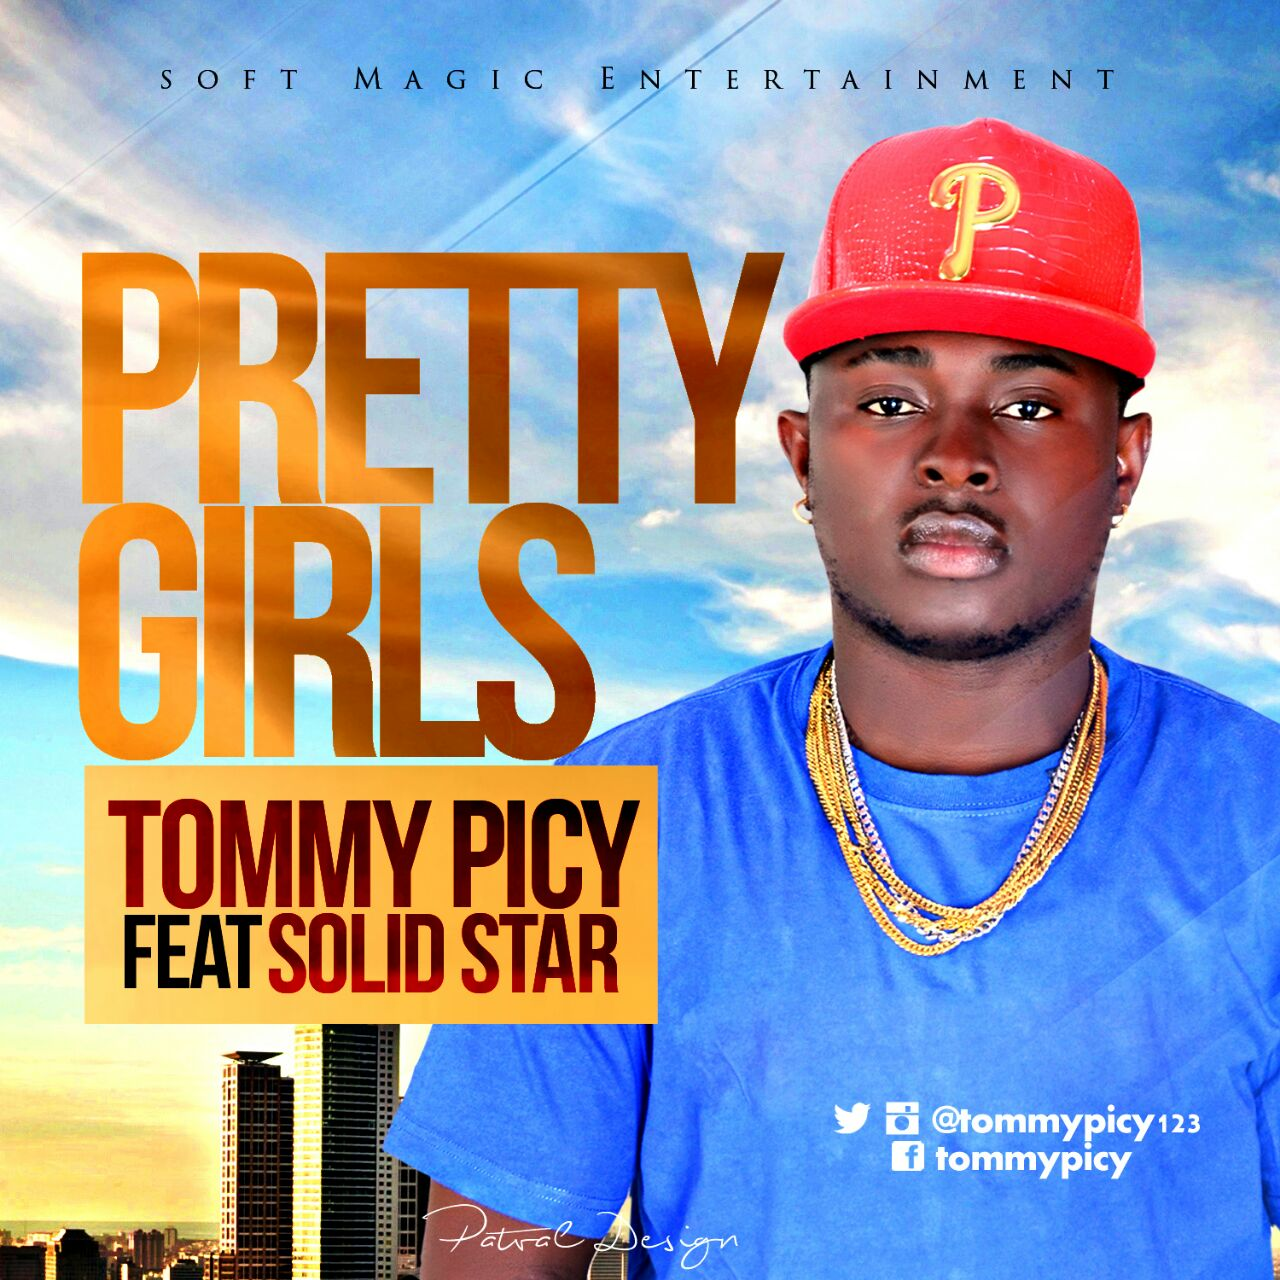 VIDEO: Tommy Picy ft. Solidstar – Pretty Girls